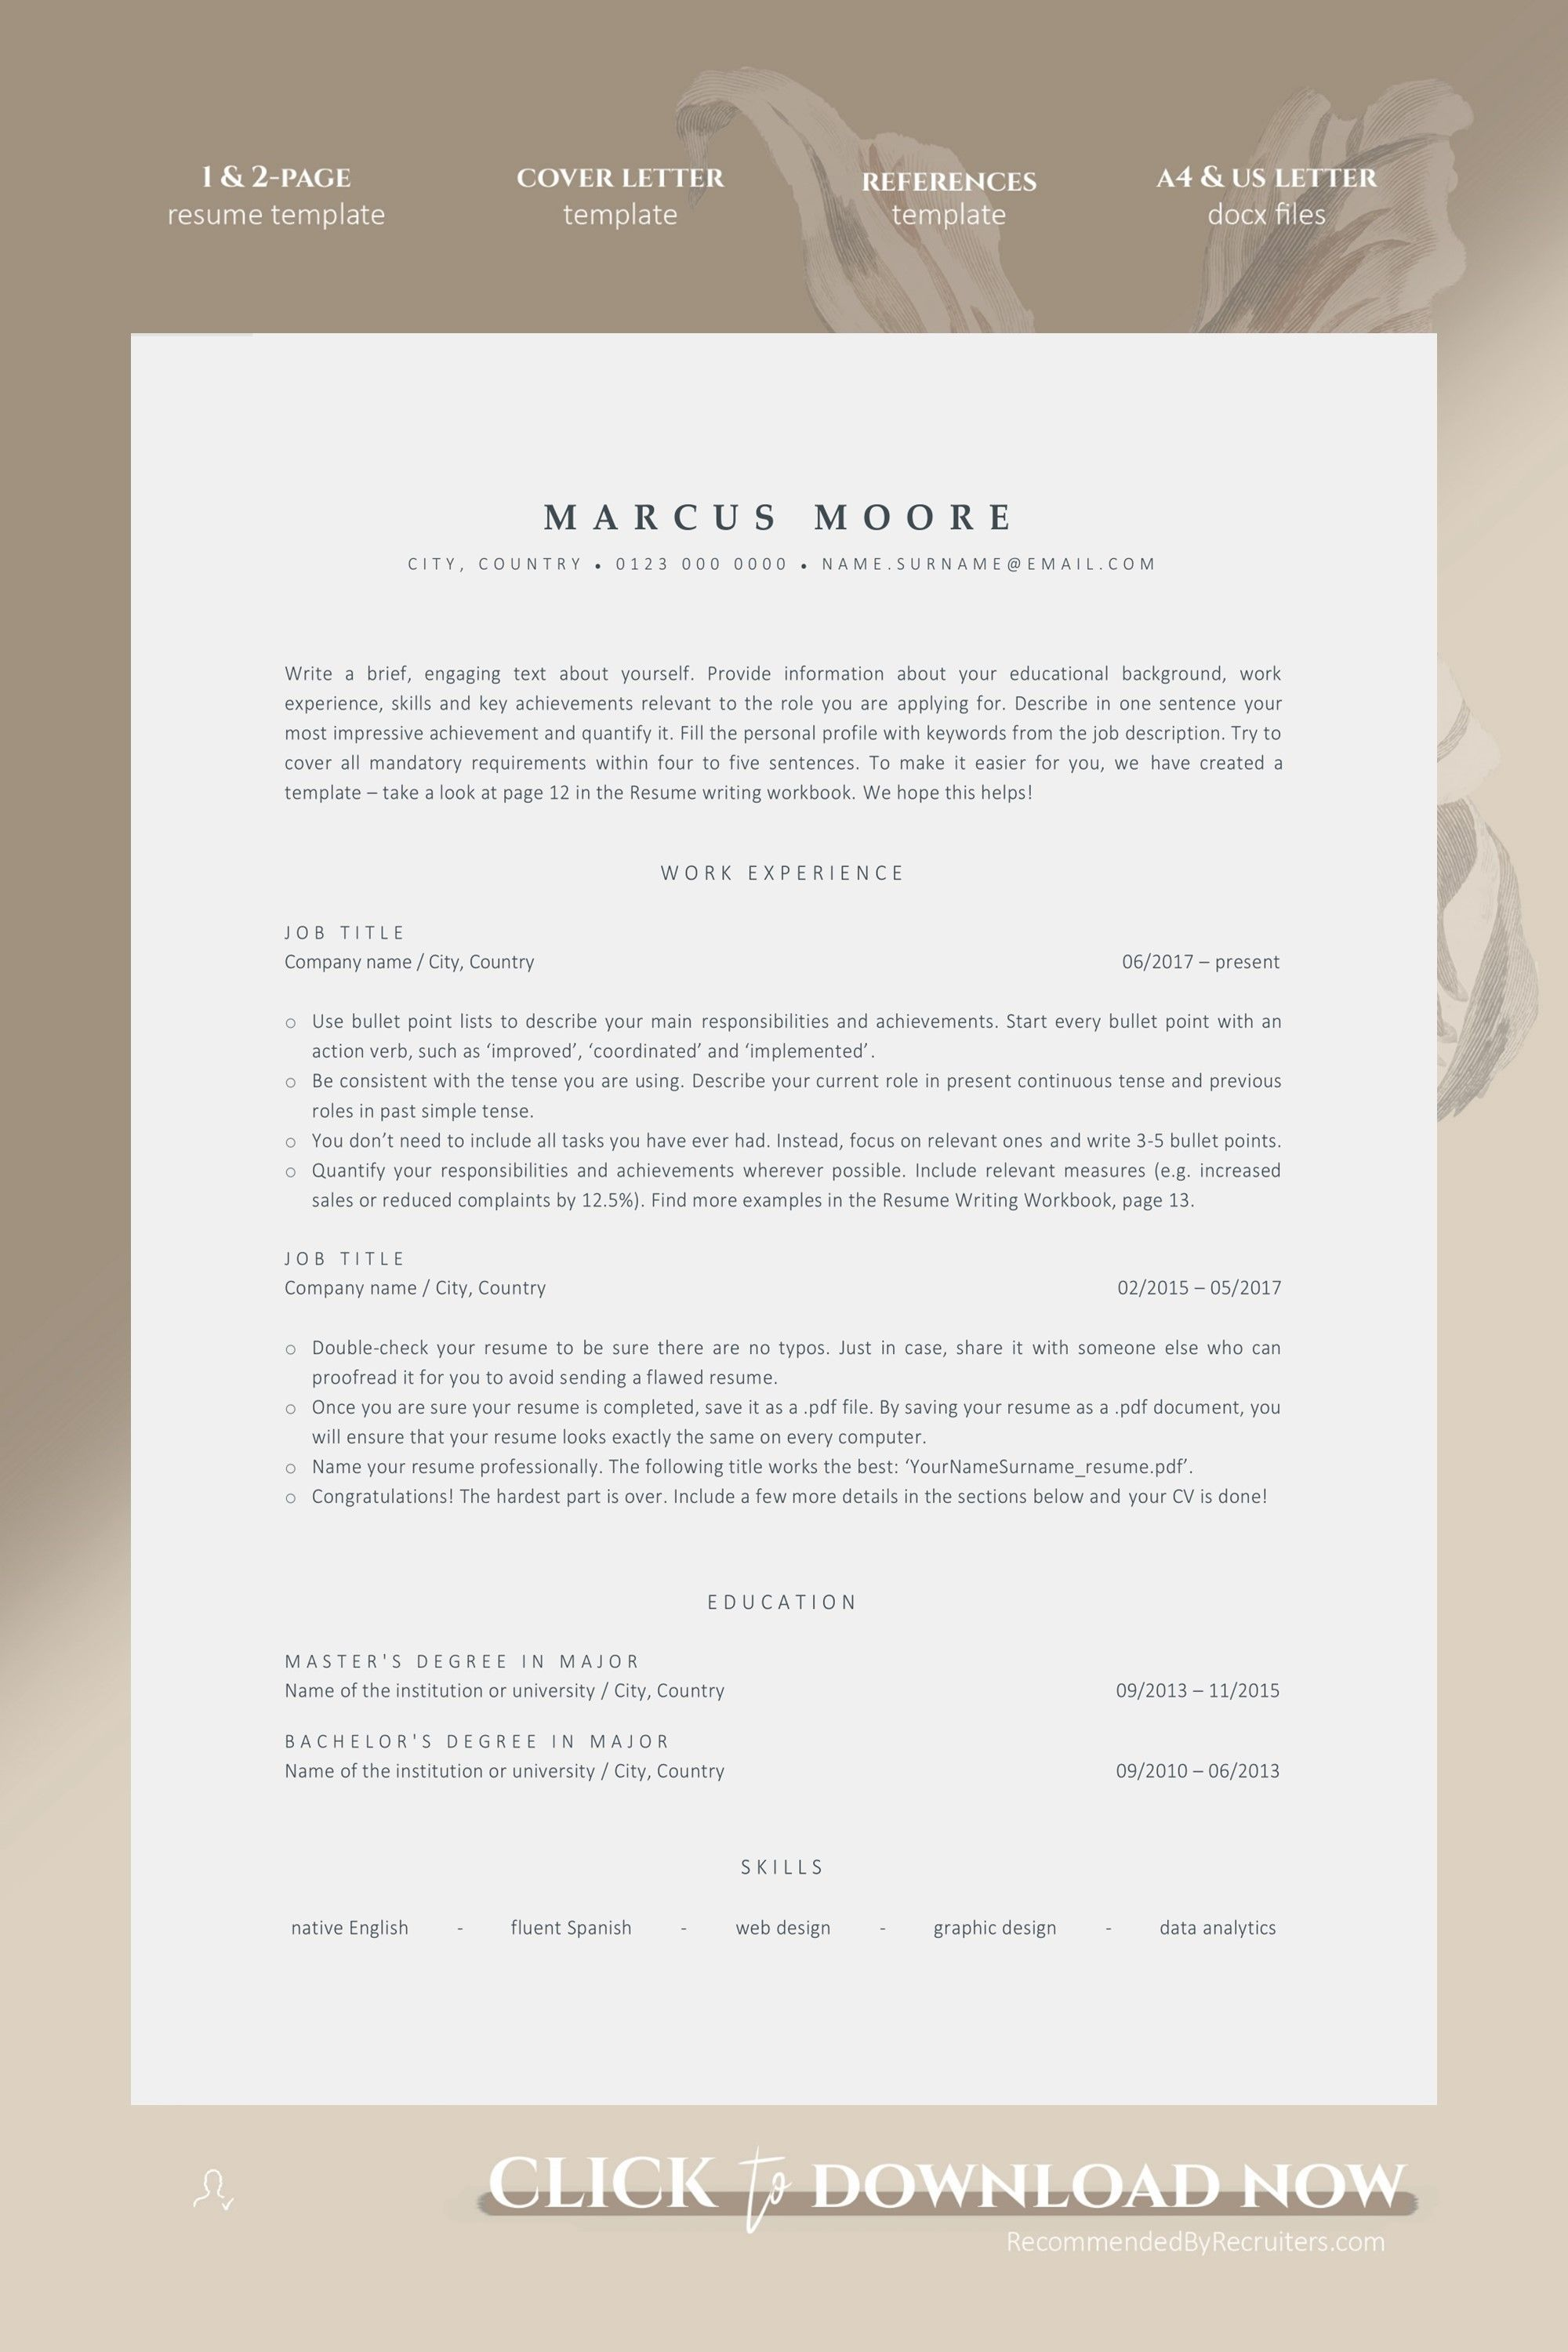 ATS Resume Template for Word, Instant Download 1 and 2